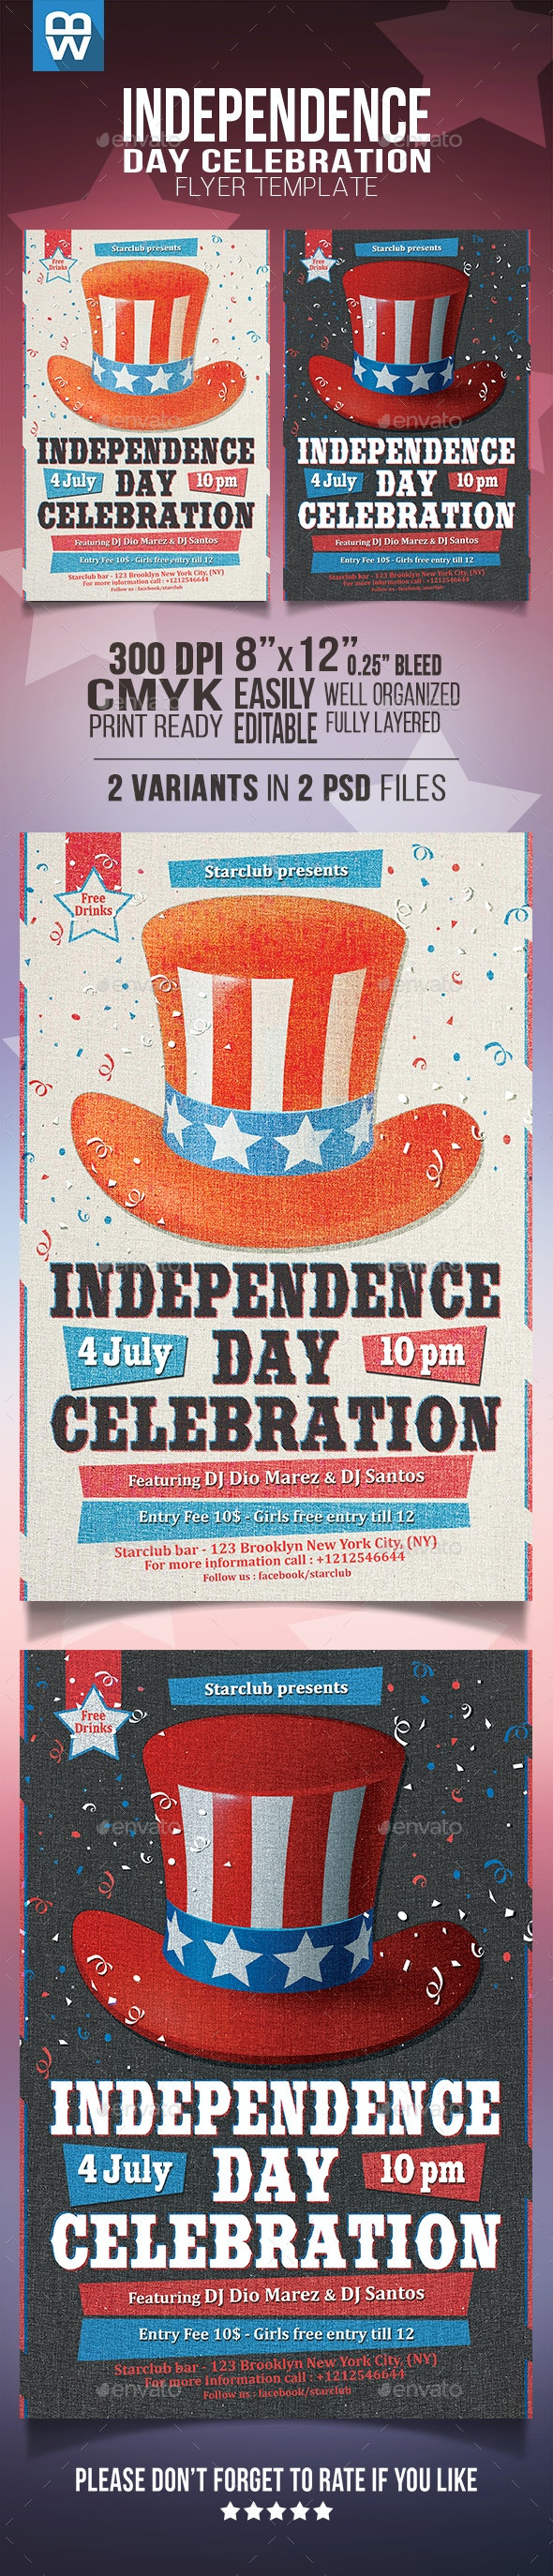 Independence Day Celebration Flyer - Events Flyers